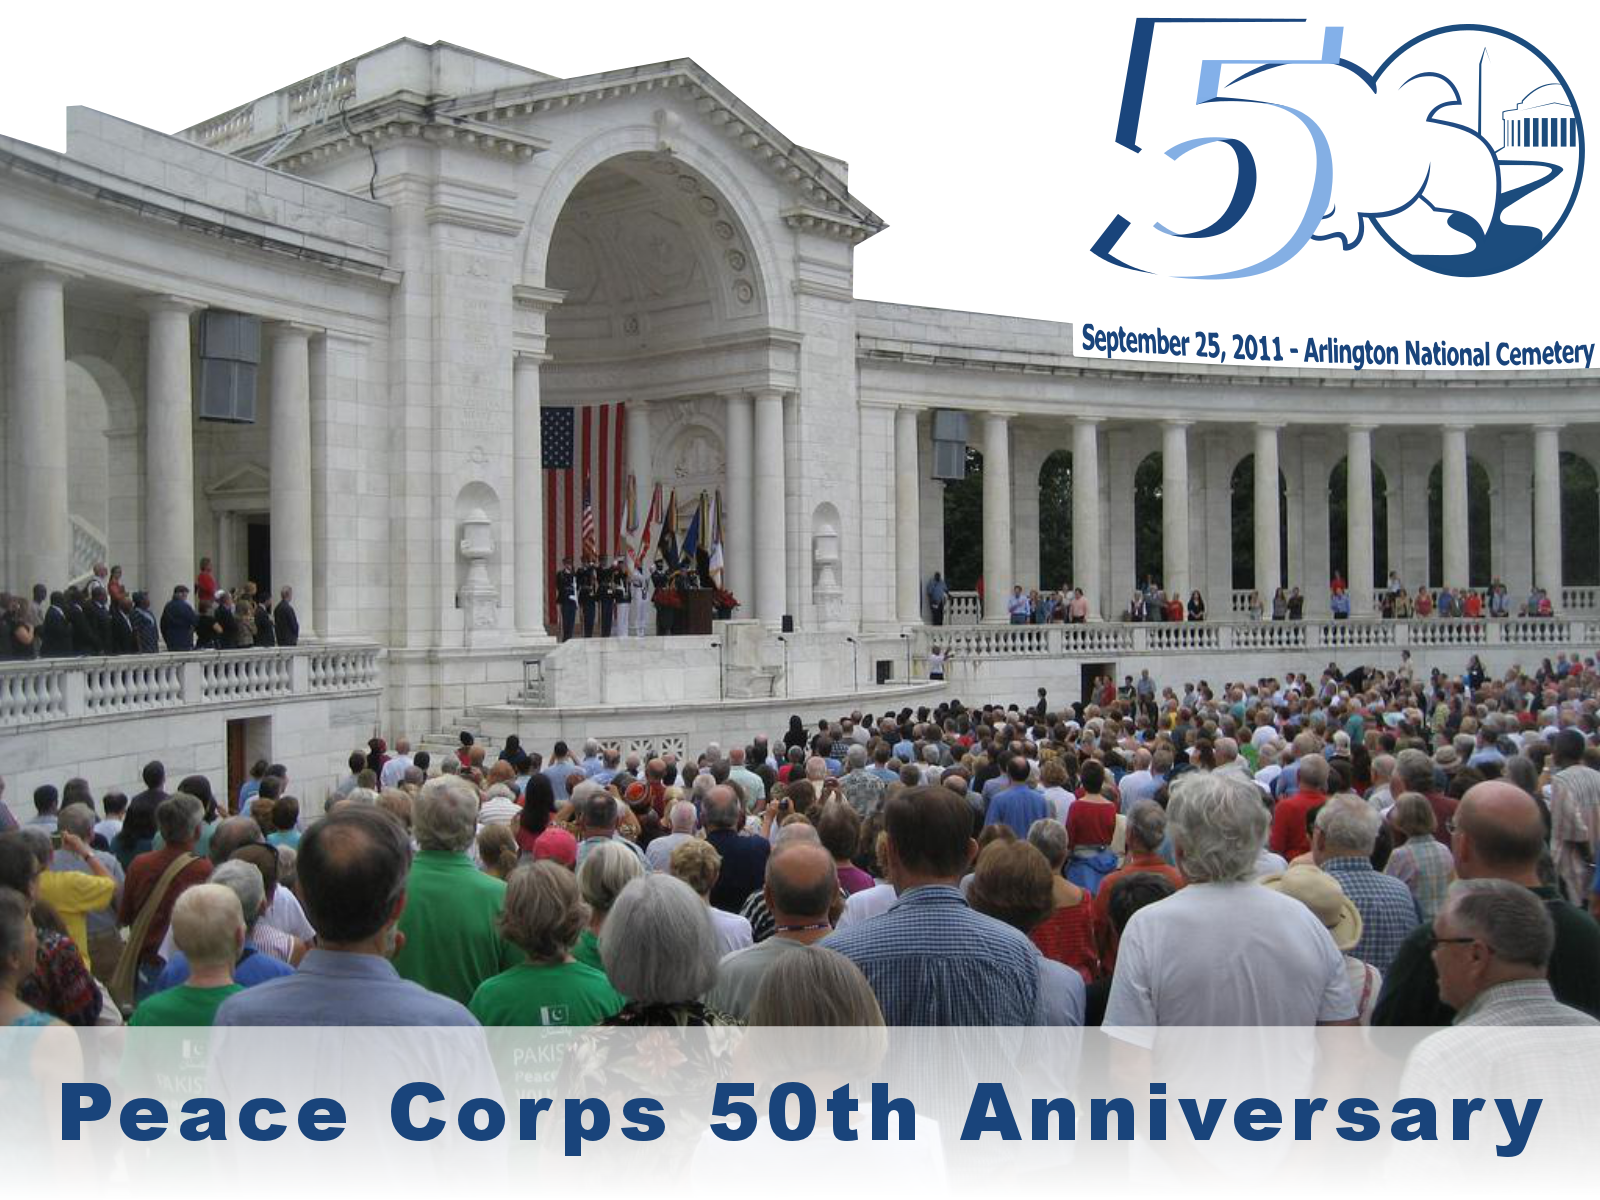 Peace corps 5oth anniversary